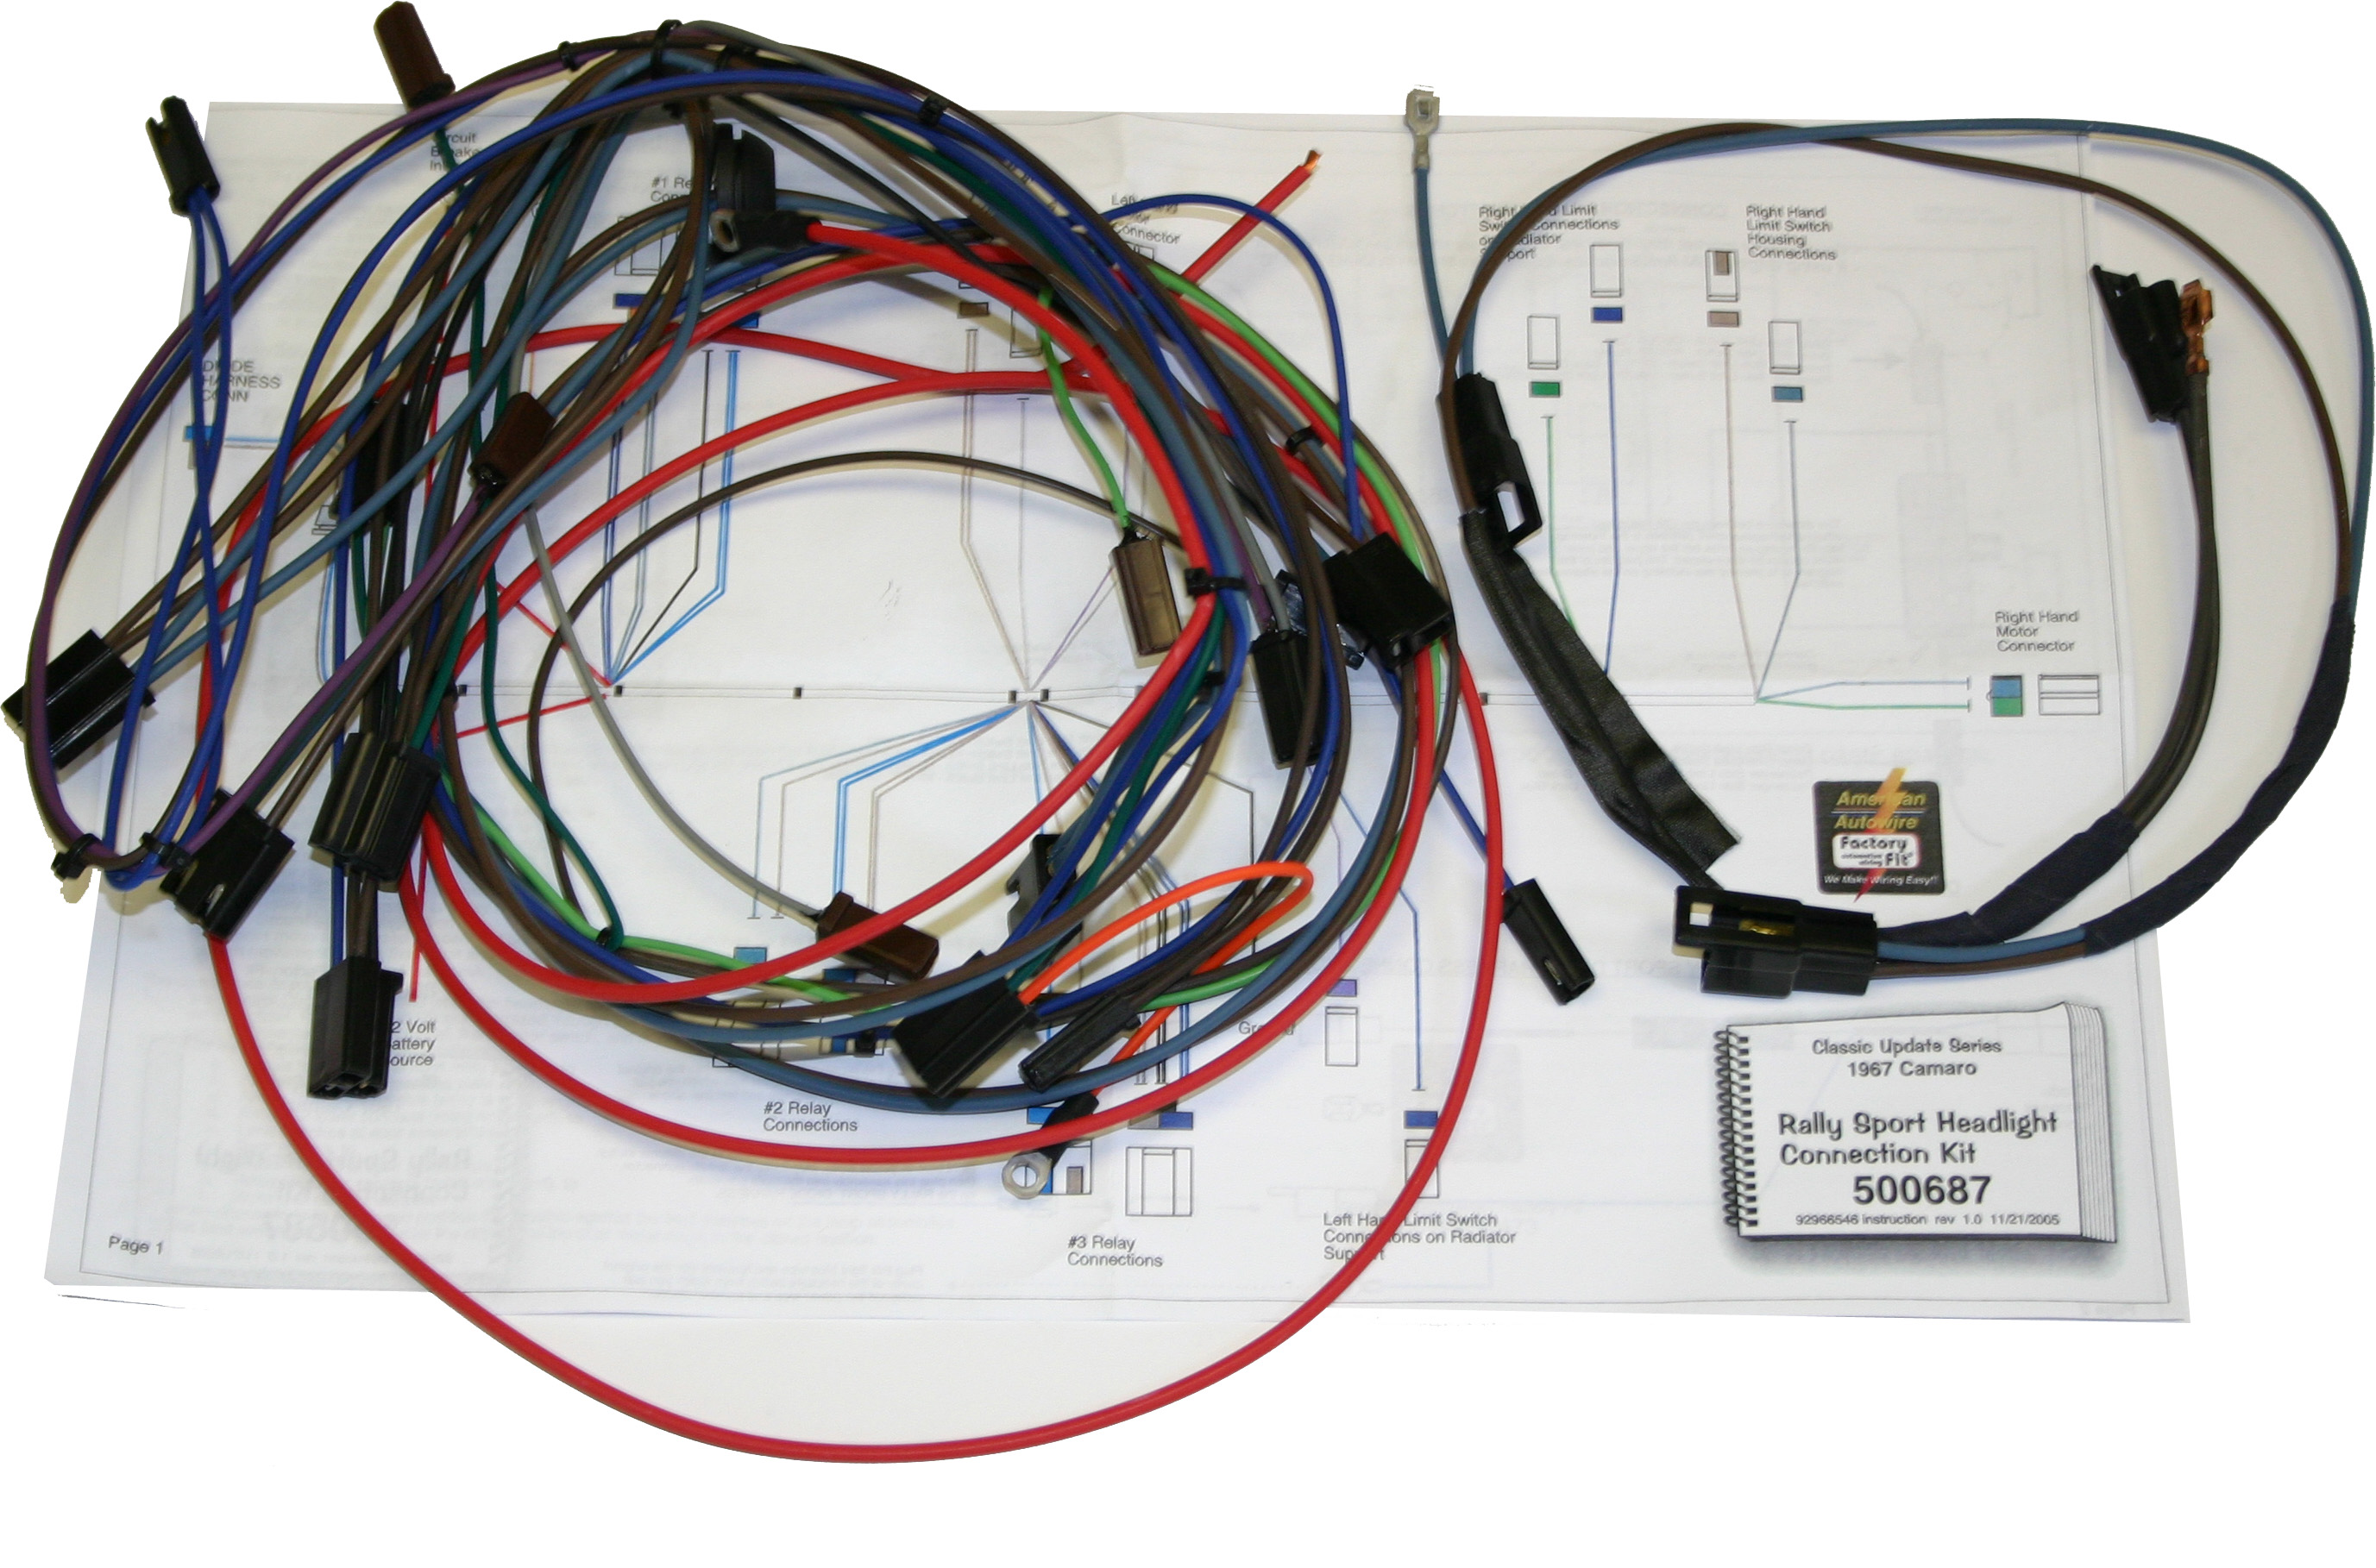 500773 67 68 camaro firebird classic update wiring harness 500661 camaro wiring harness at pacquiaovsvargaslive.co